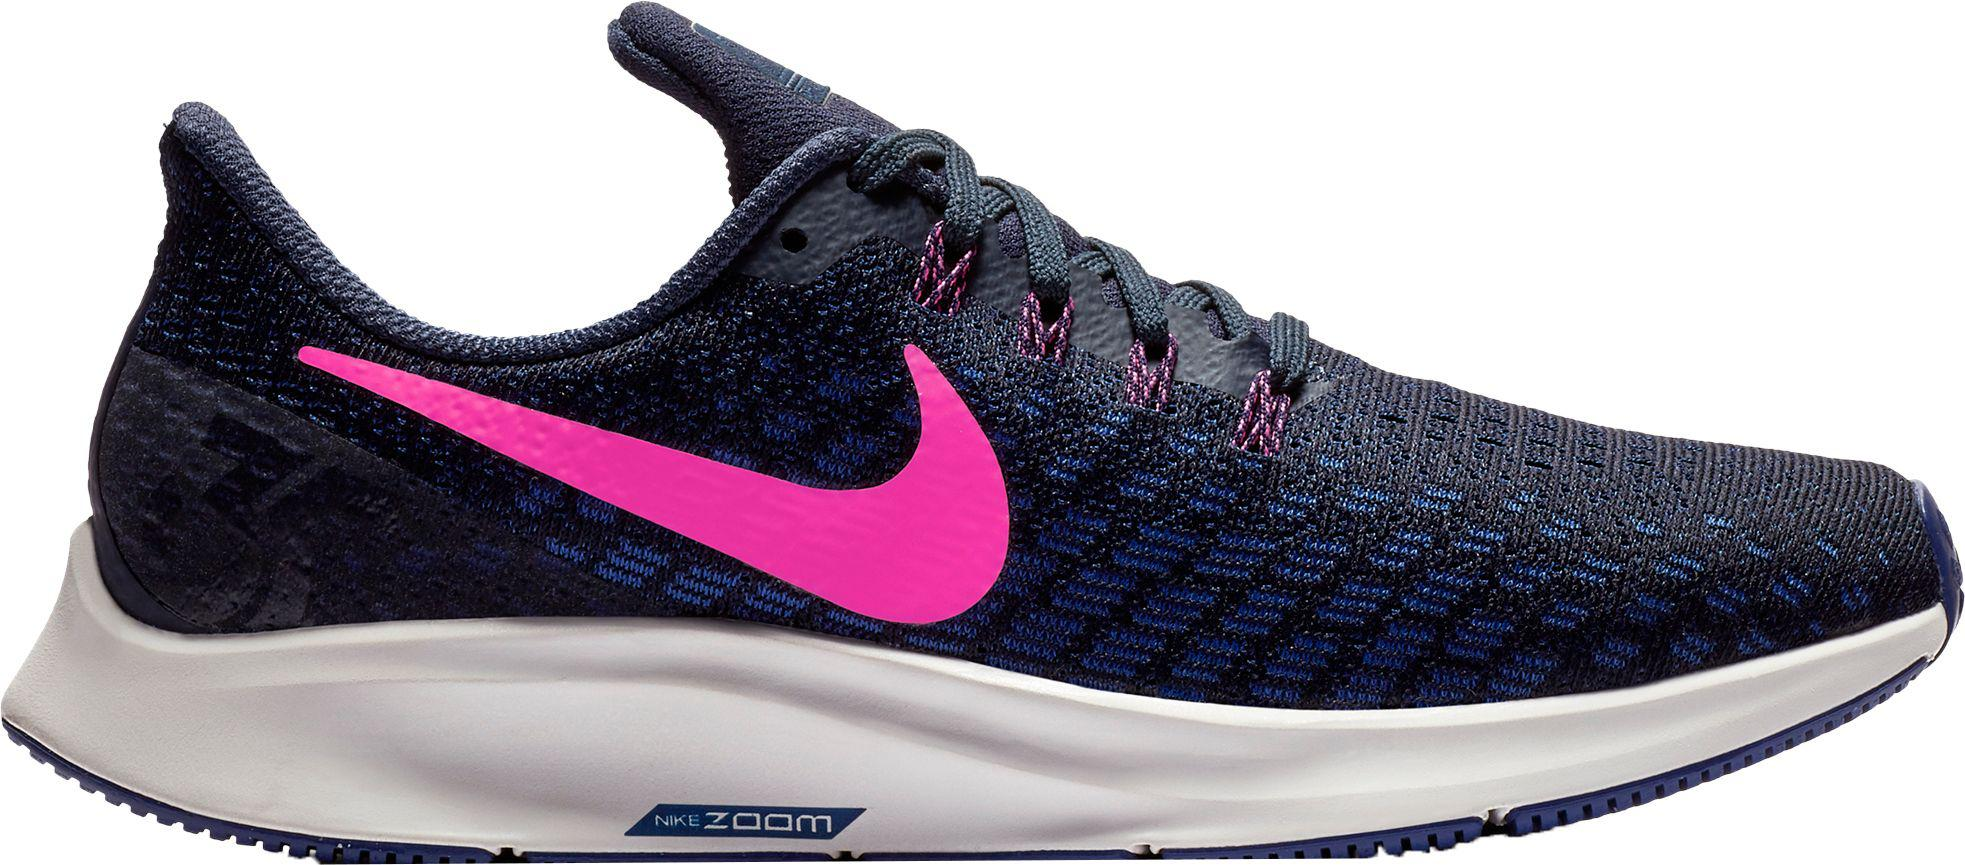 new arrival 19f34 69614 ... cheapest nike blue air zoom pegasus 35 running shoes lyst ab3a6 a8dba